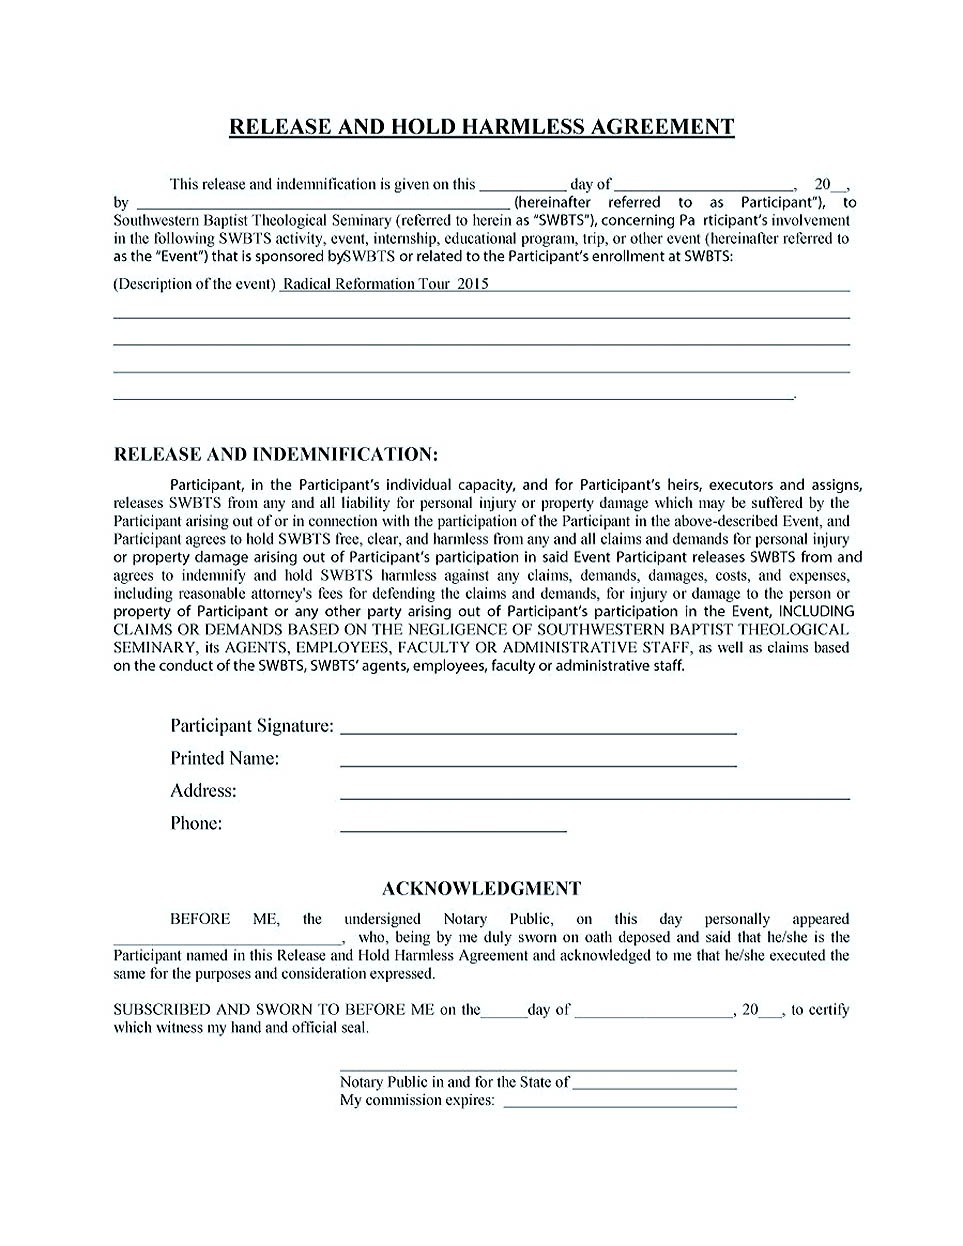 hold harmless agreement pdf